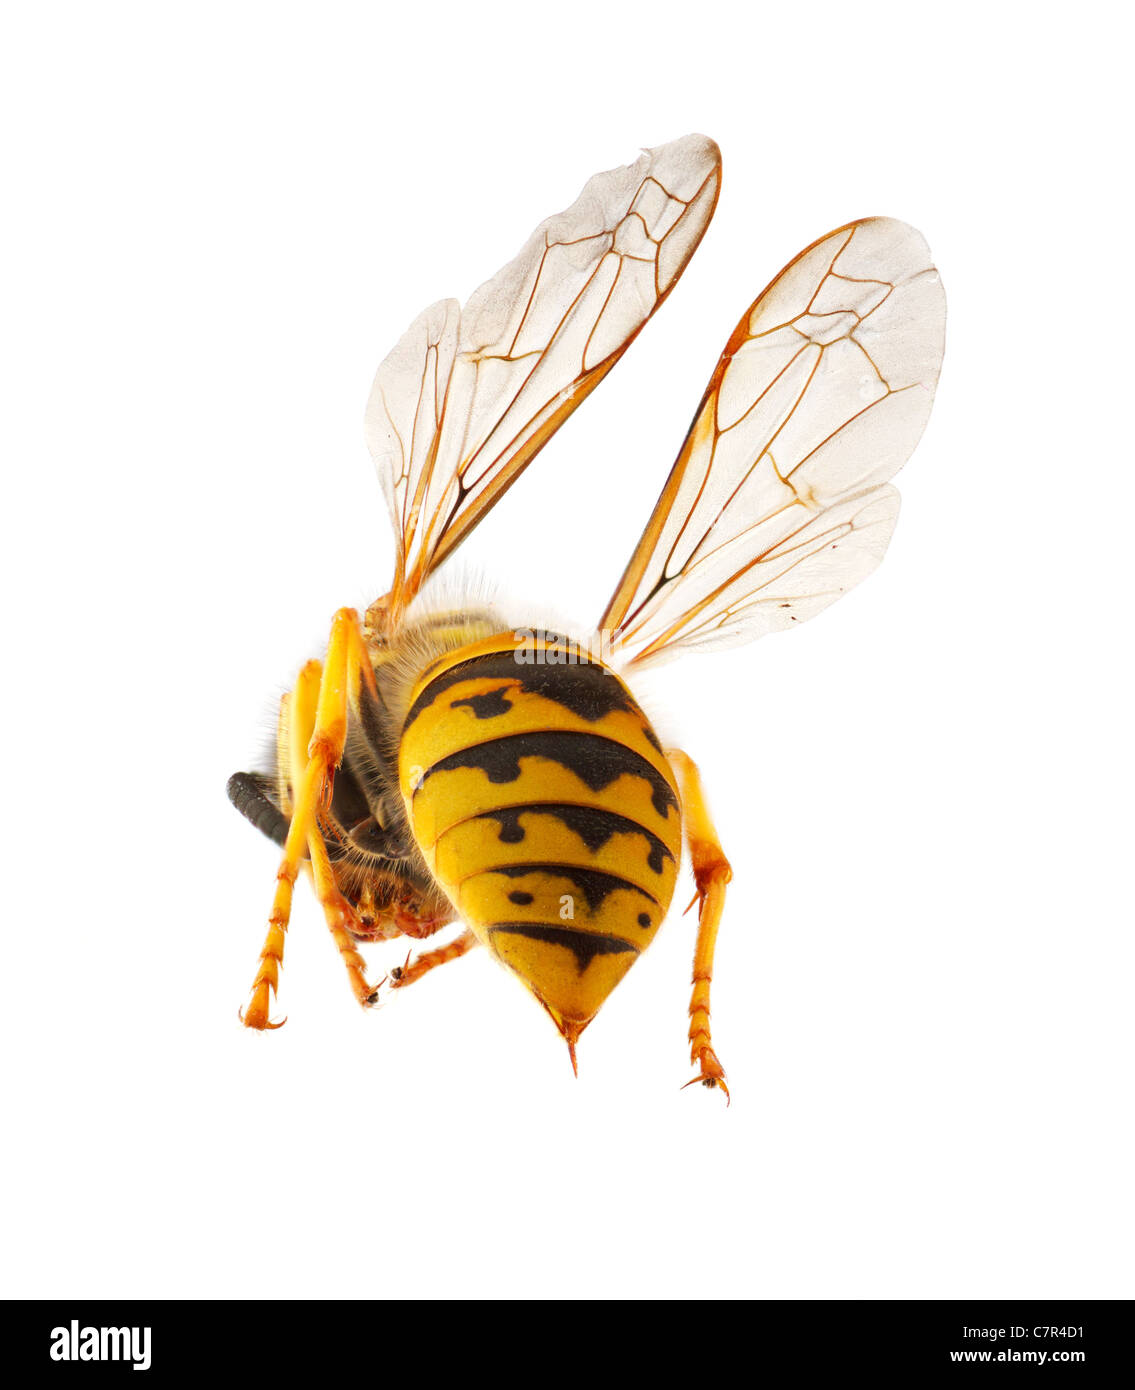 wasp presenting it's abdomen with threatening stinger, macro with stacked focus, isolated concept for threat - Stock Image